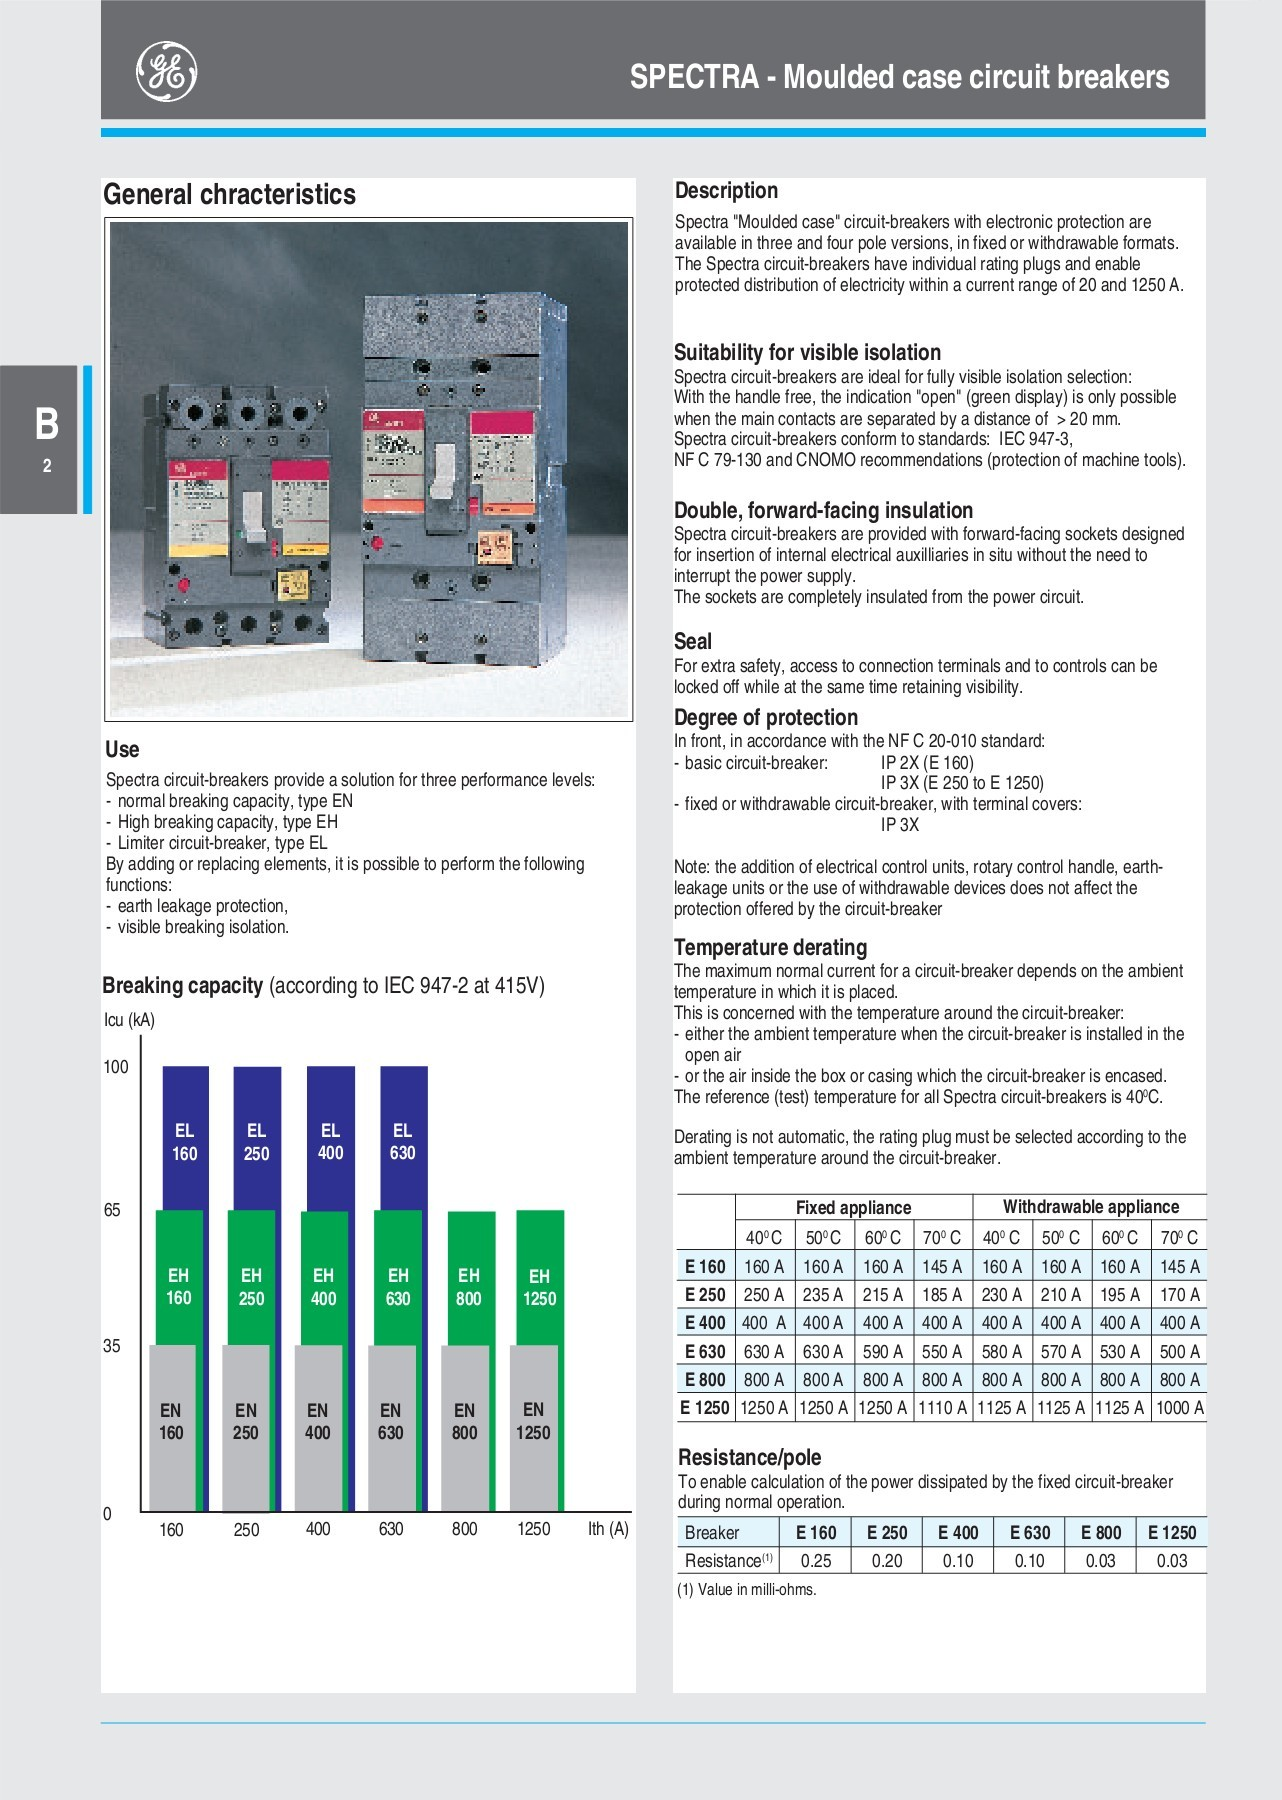 hight resolution of spectra moulded case circuit breakers pages 1 50 text version fliphtml5